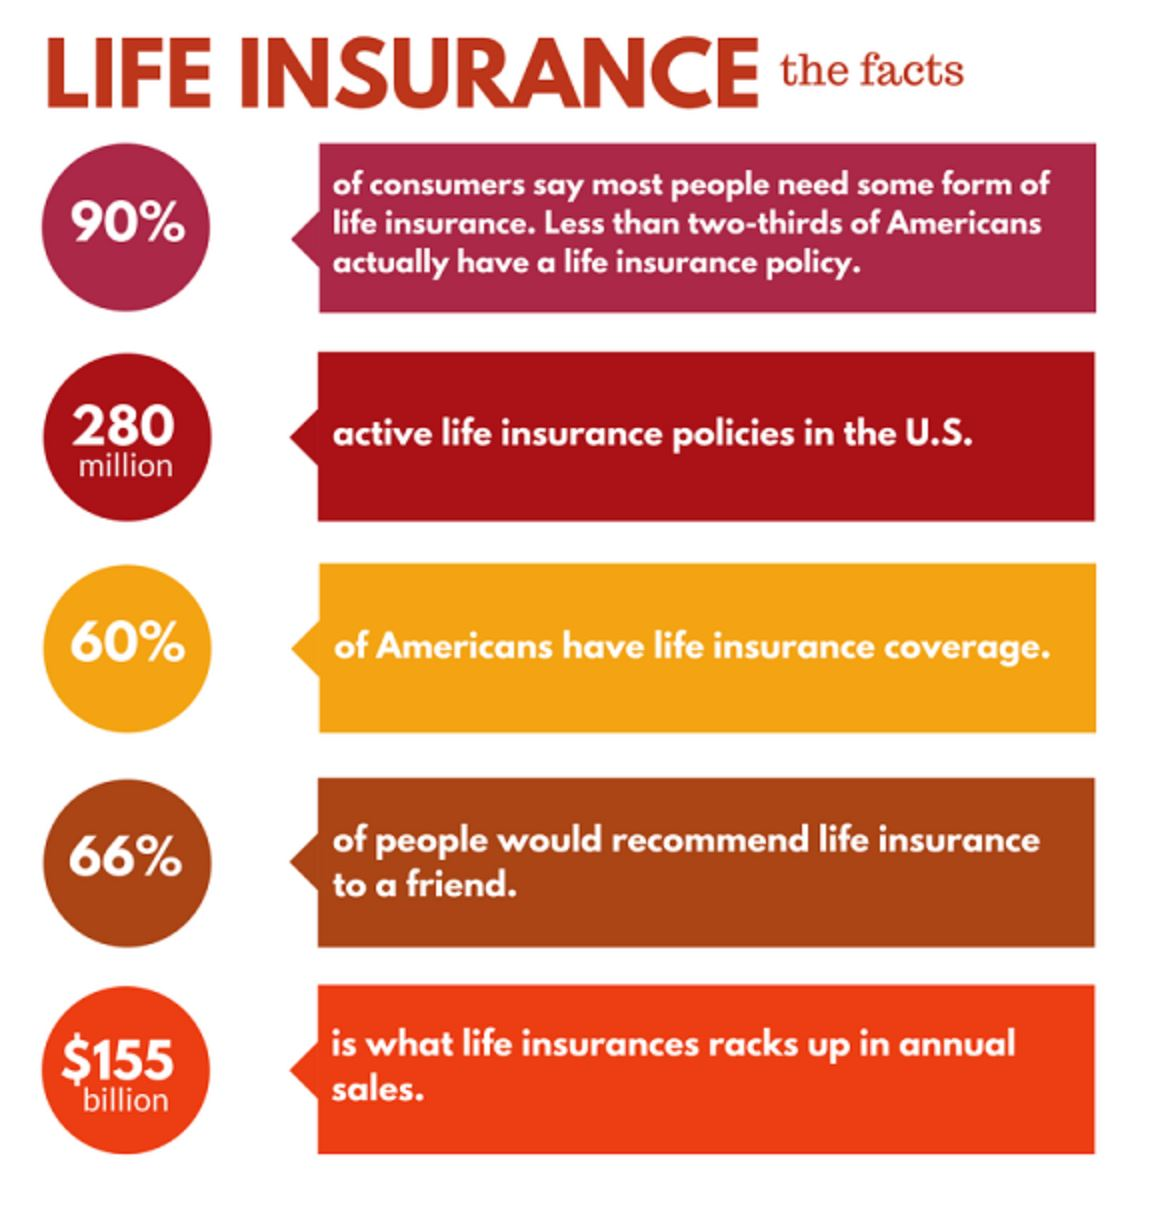 life insurance facts